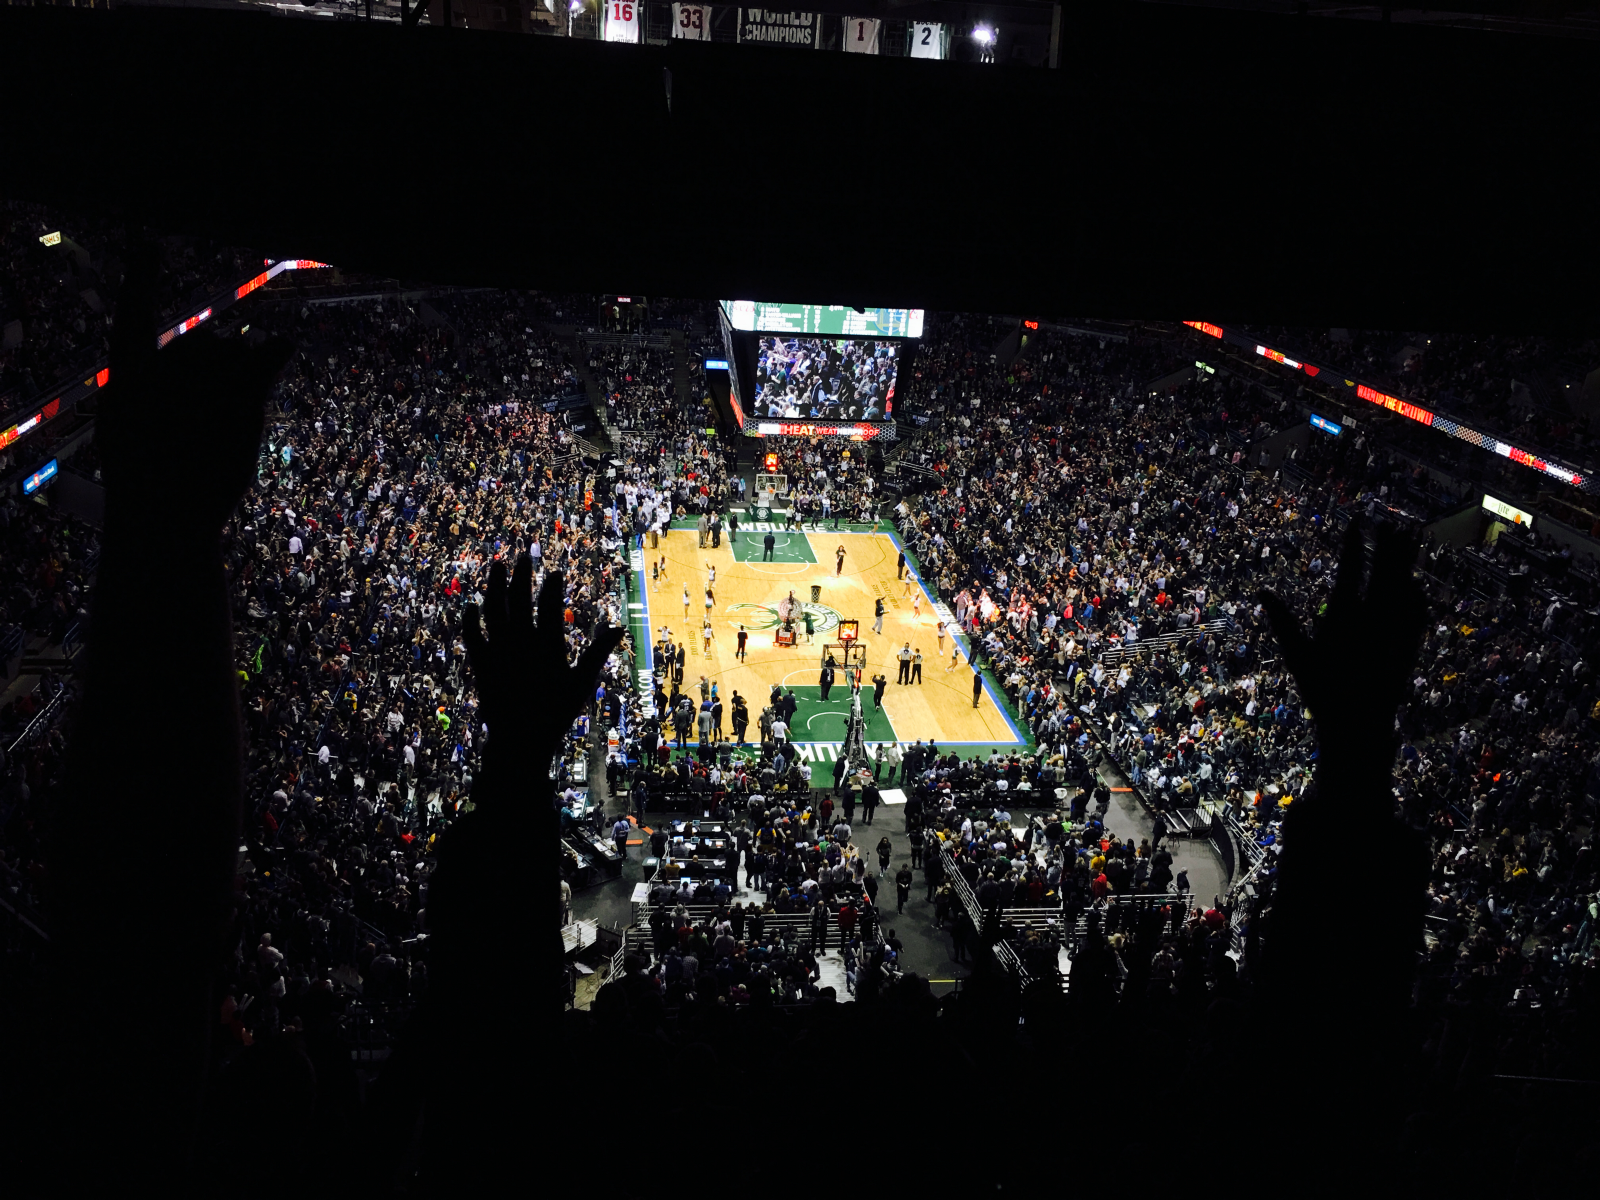 Bucks beat the Warriors at the Bradley Center. I was there.